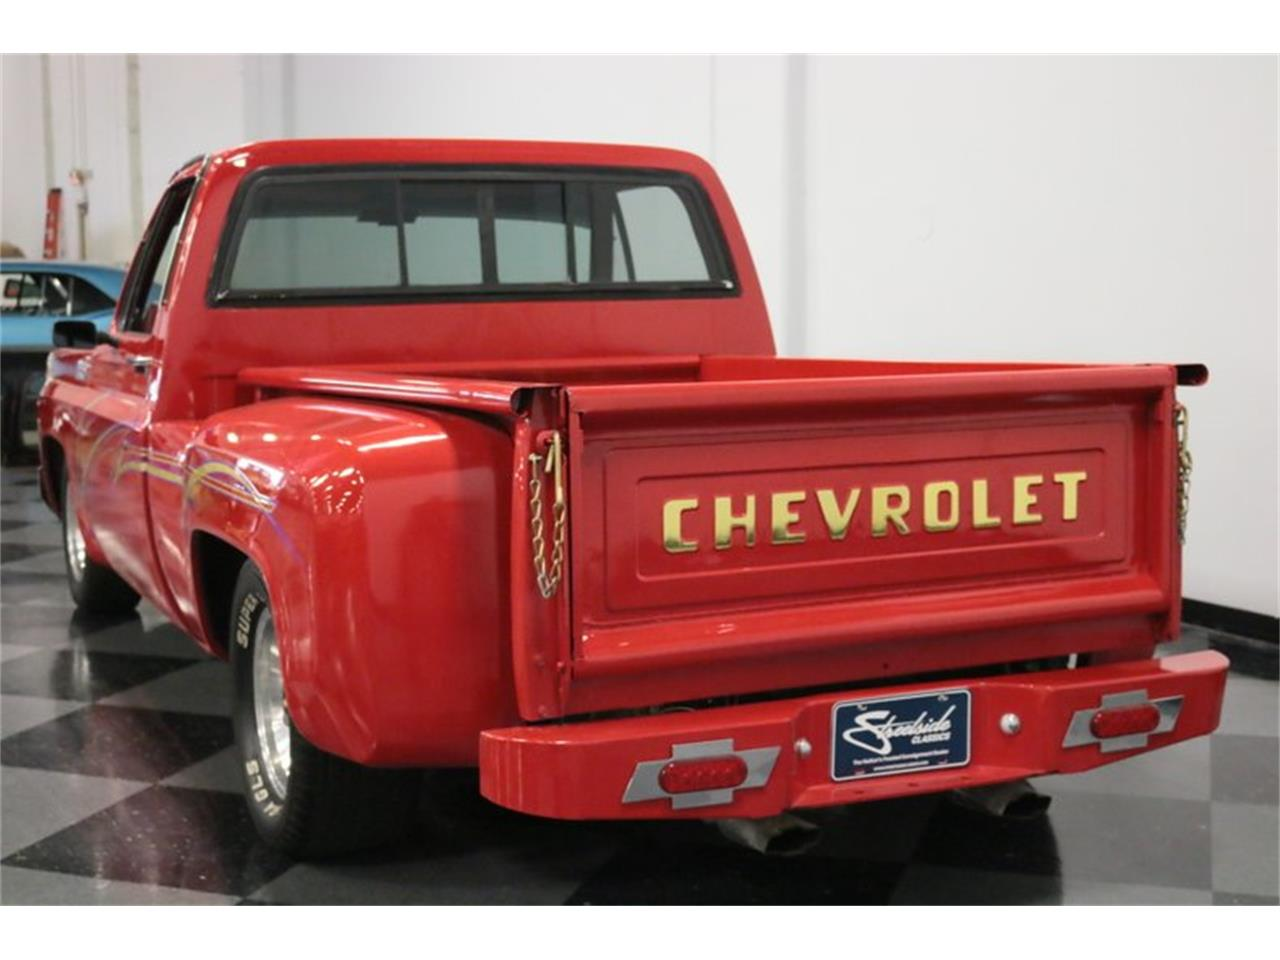 Large Picture of '79 Chevrolet C10 located in Ft Worth Texas - $22,995.00 Offered by Streetside Classics - Dallas / Fort Worth - QAW7